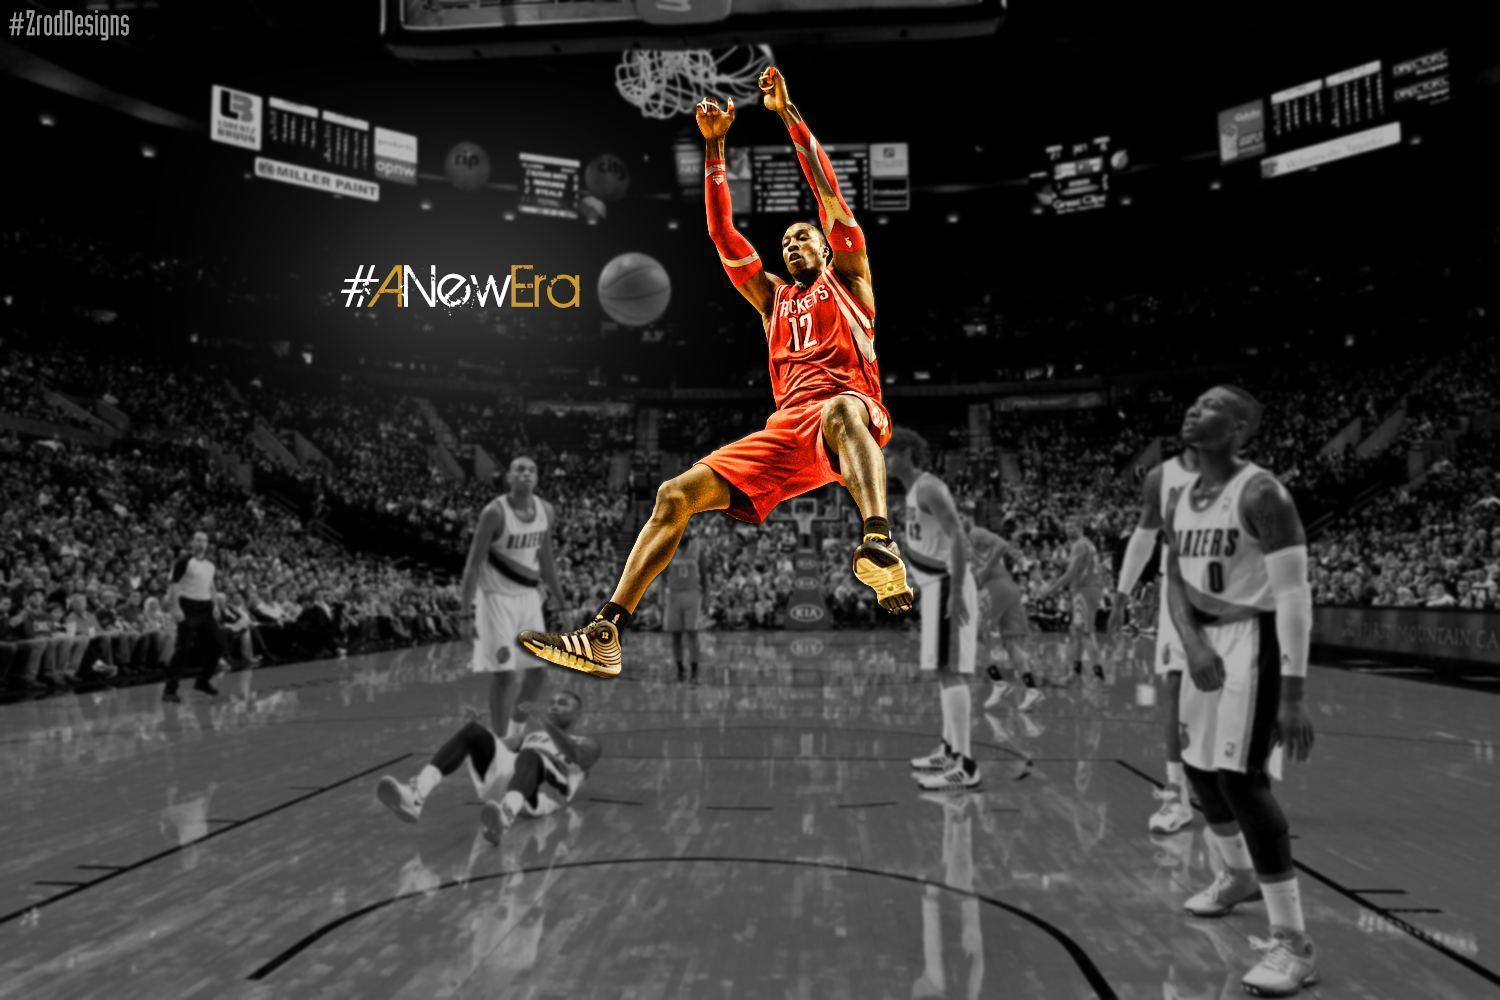 Dwight Howard Wallpapers | Basketball Wallpapers at ... |Dwight Howard Wallpaper Rockets